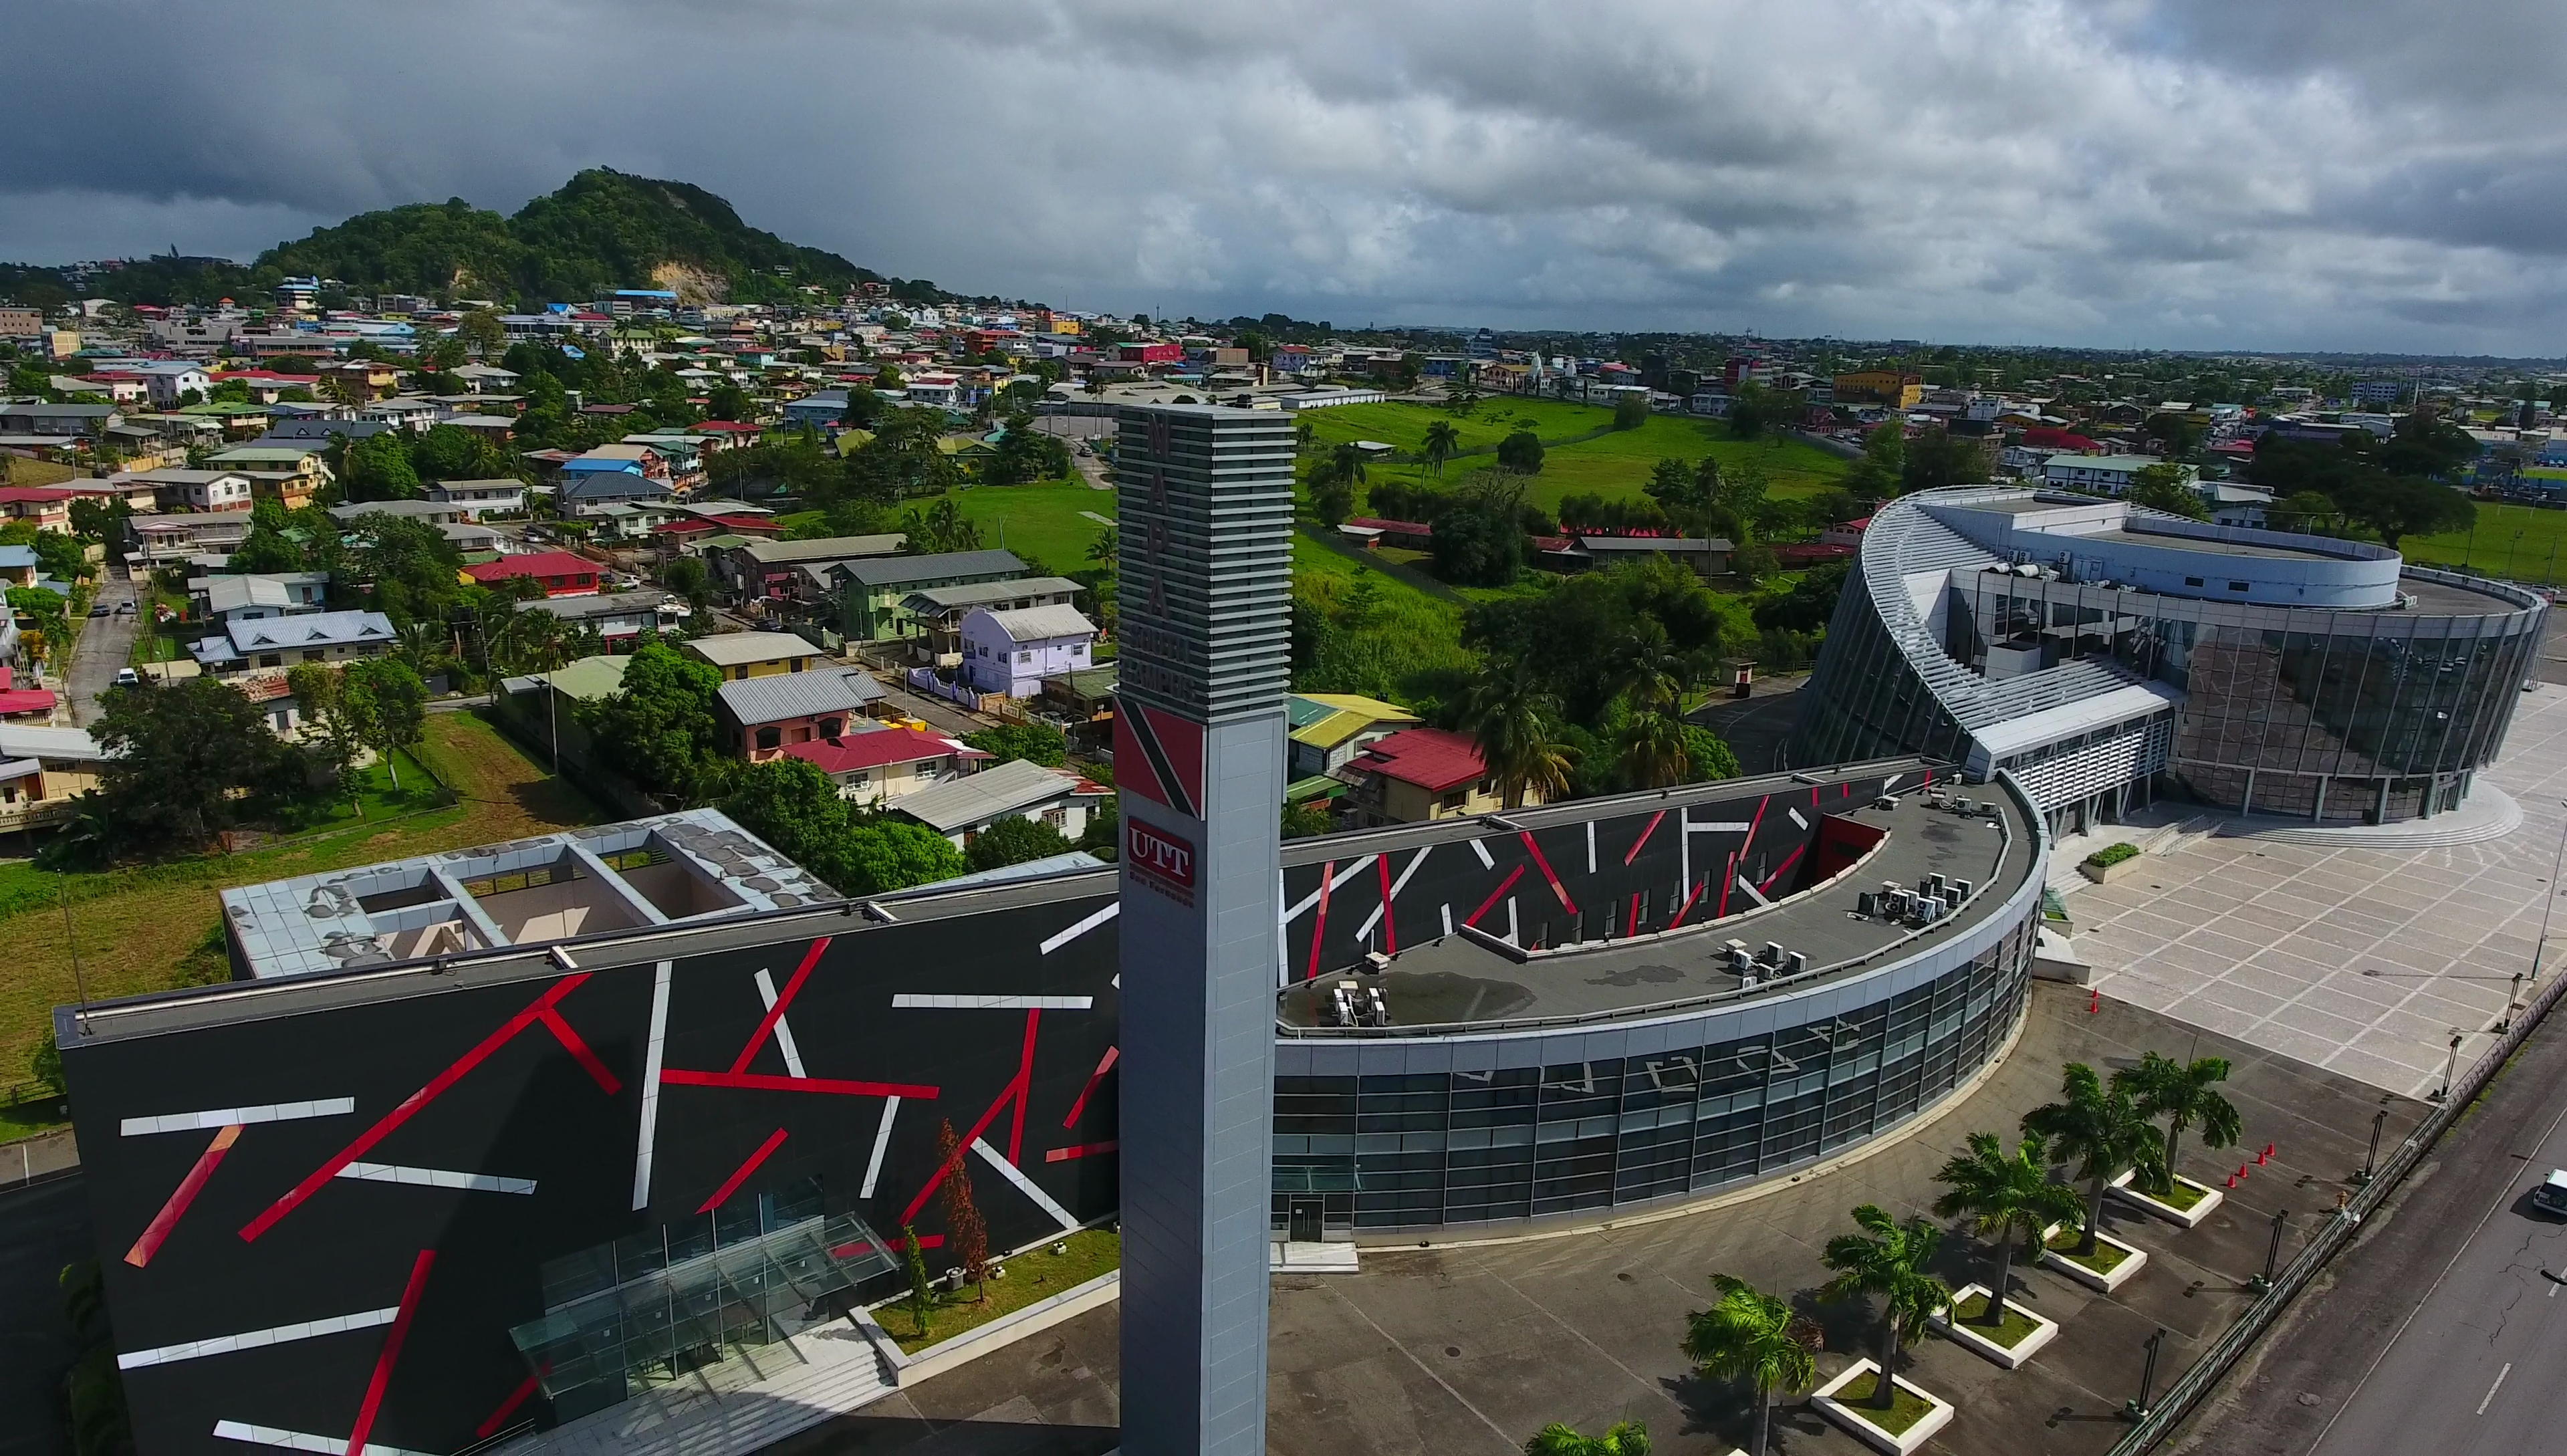 University of Trinidad and Tobago, San Fernando campus located on the SAPA Compound. Left: University of Trinidad and Tobago (UTT) San Fernando campus. Right: Southern Academy for the Performing Arts (SAPA). San Fernando, Trinidad and Tobago. Note how the building ensemble forms an actual clef. Photo taken as part of the Southern Trinidad Aerial Photo Project, a small project sponsored by WMDE. Drone used: DJI Phantom 4. Snapshot taken from video footage via VLC. Photo taken on December 23, 2016.